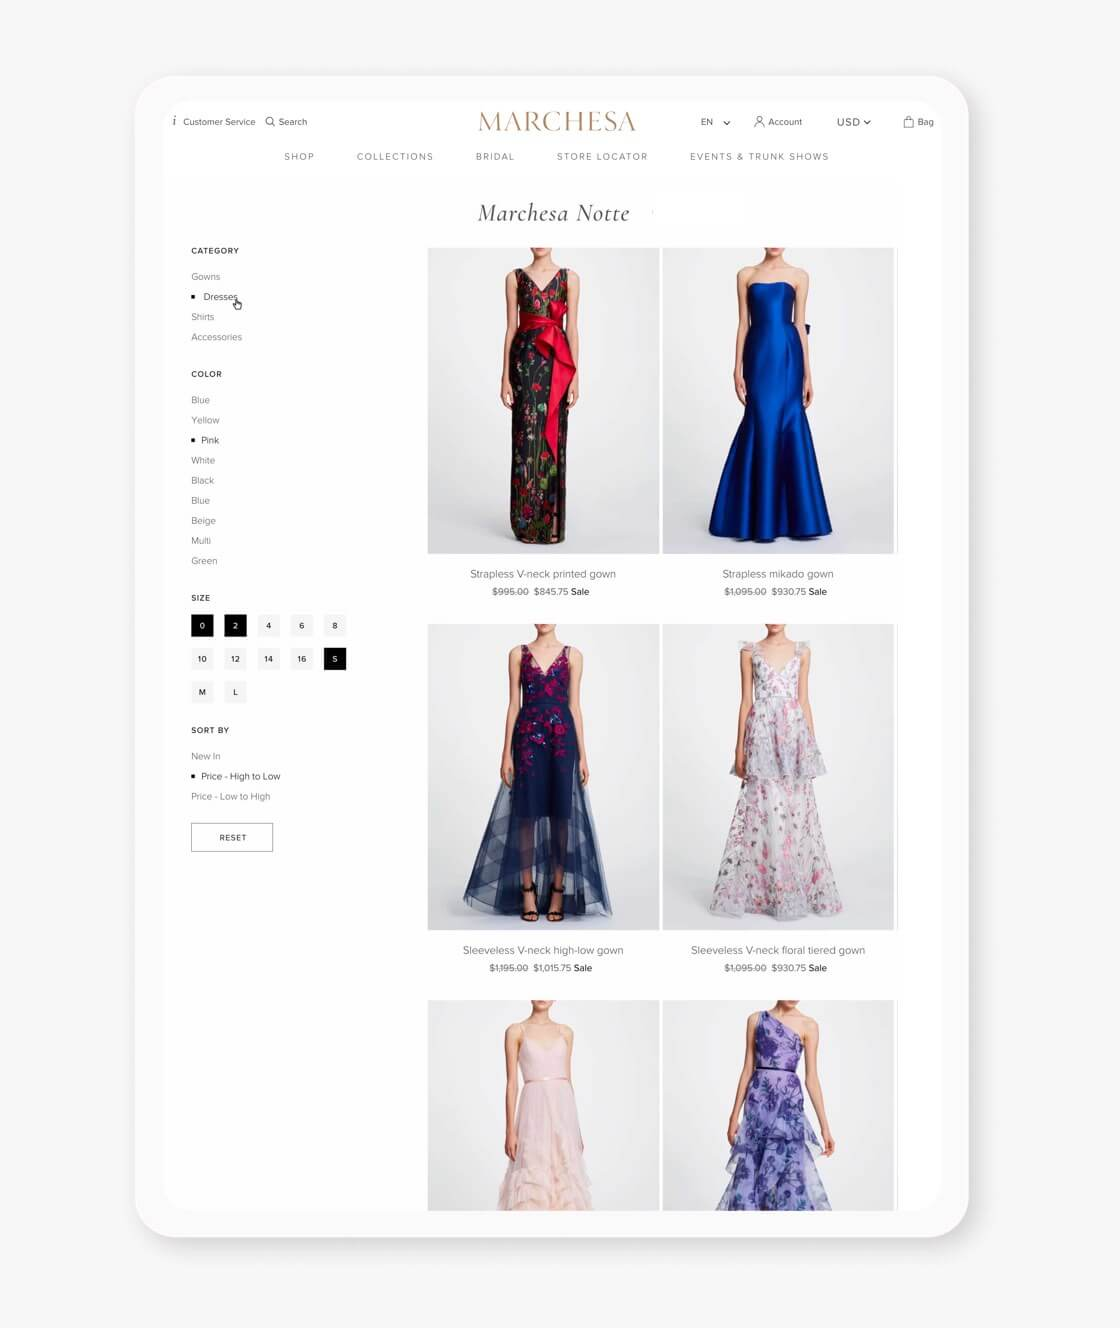 marchesa shopify plus website collection page on tablet